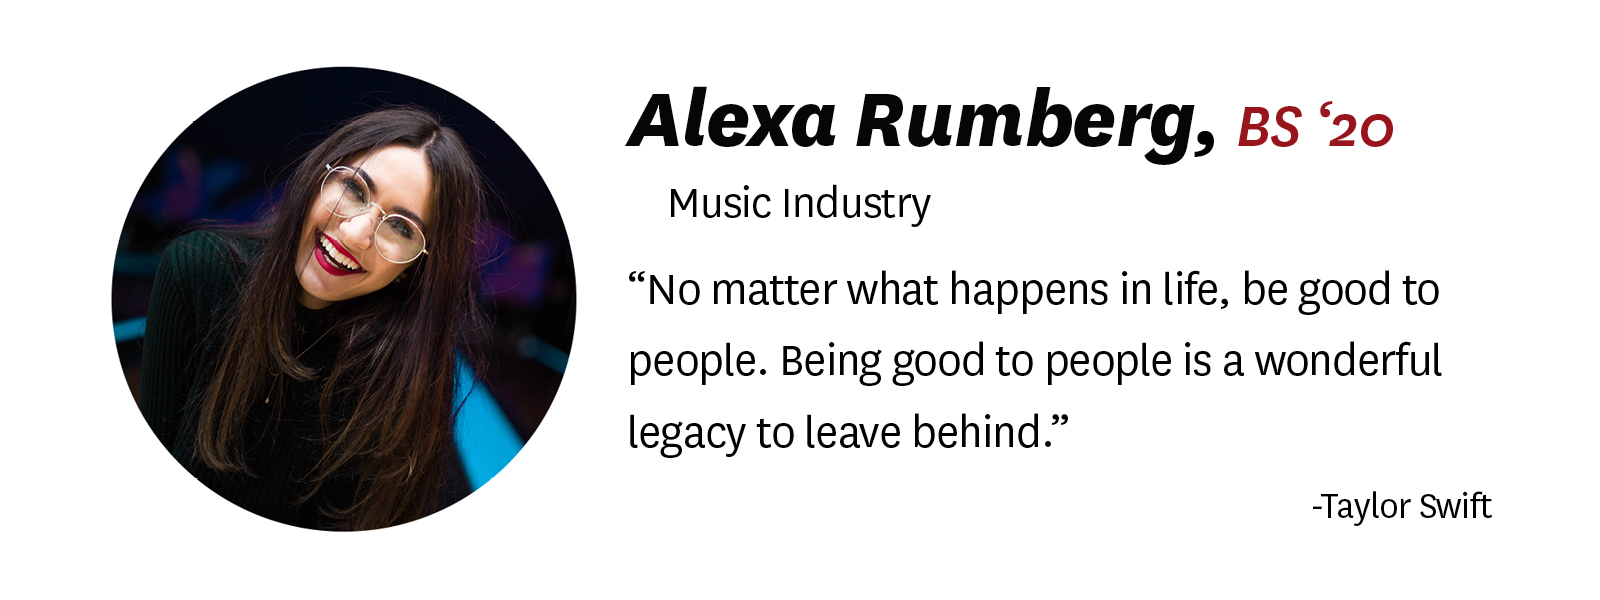 "Photo of Alexa Rumberg with her ""senior quote."" Description of text: Alexa Rumberg, BM '20, Music Industry. Quote: ""No matter what happens in life, be good to people. Being good to people is a wonderful legacy to leave behind."" by Taylor Swift"